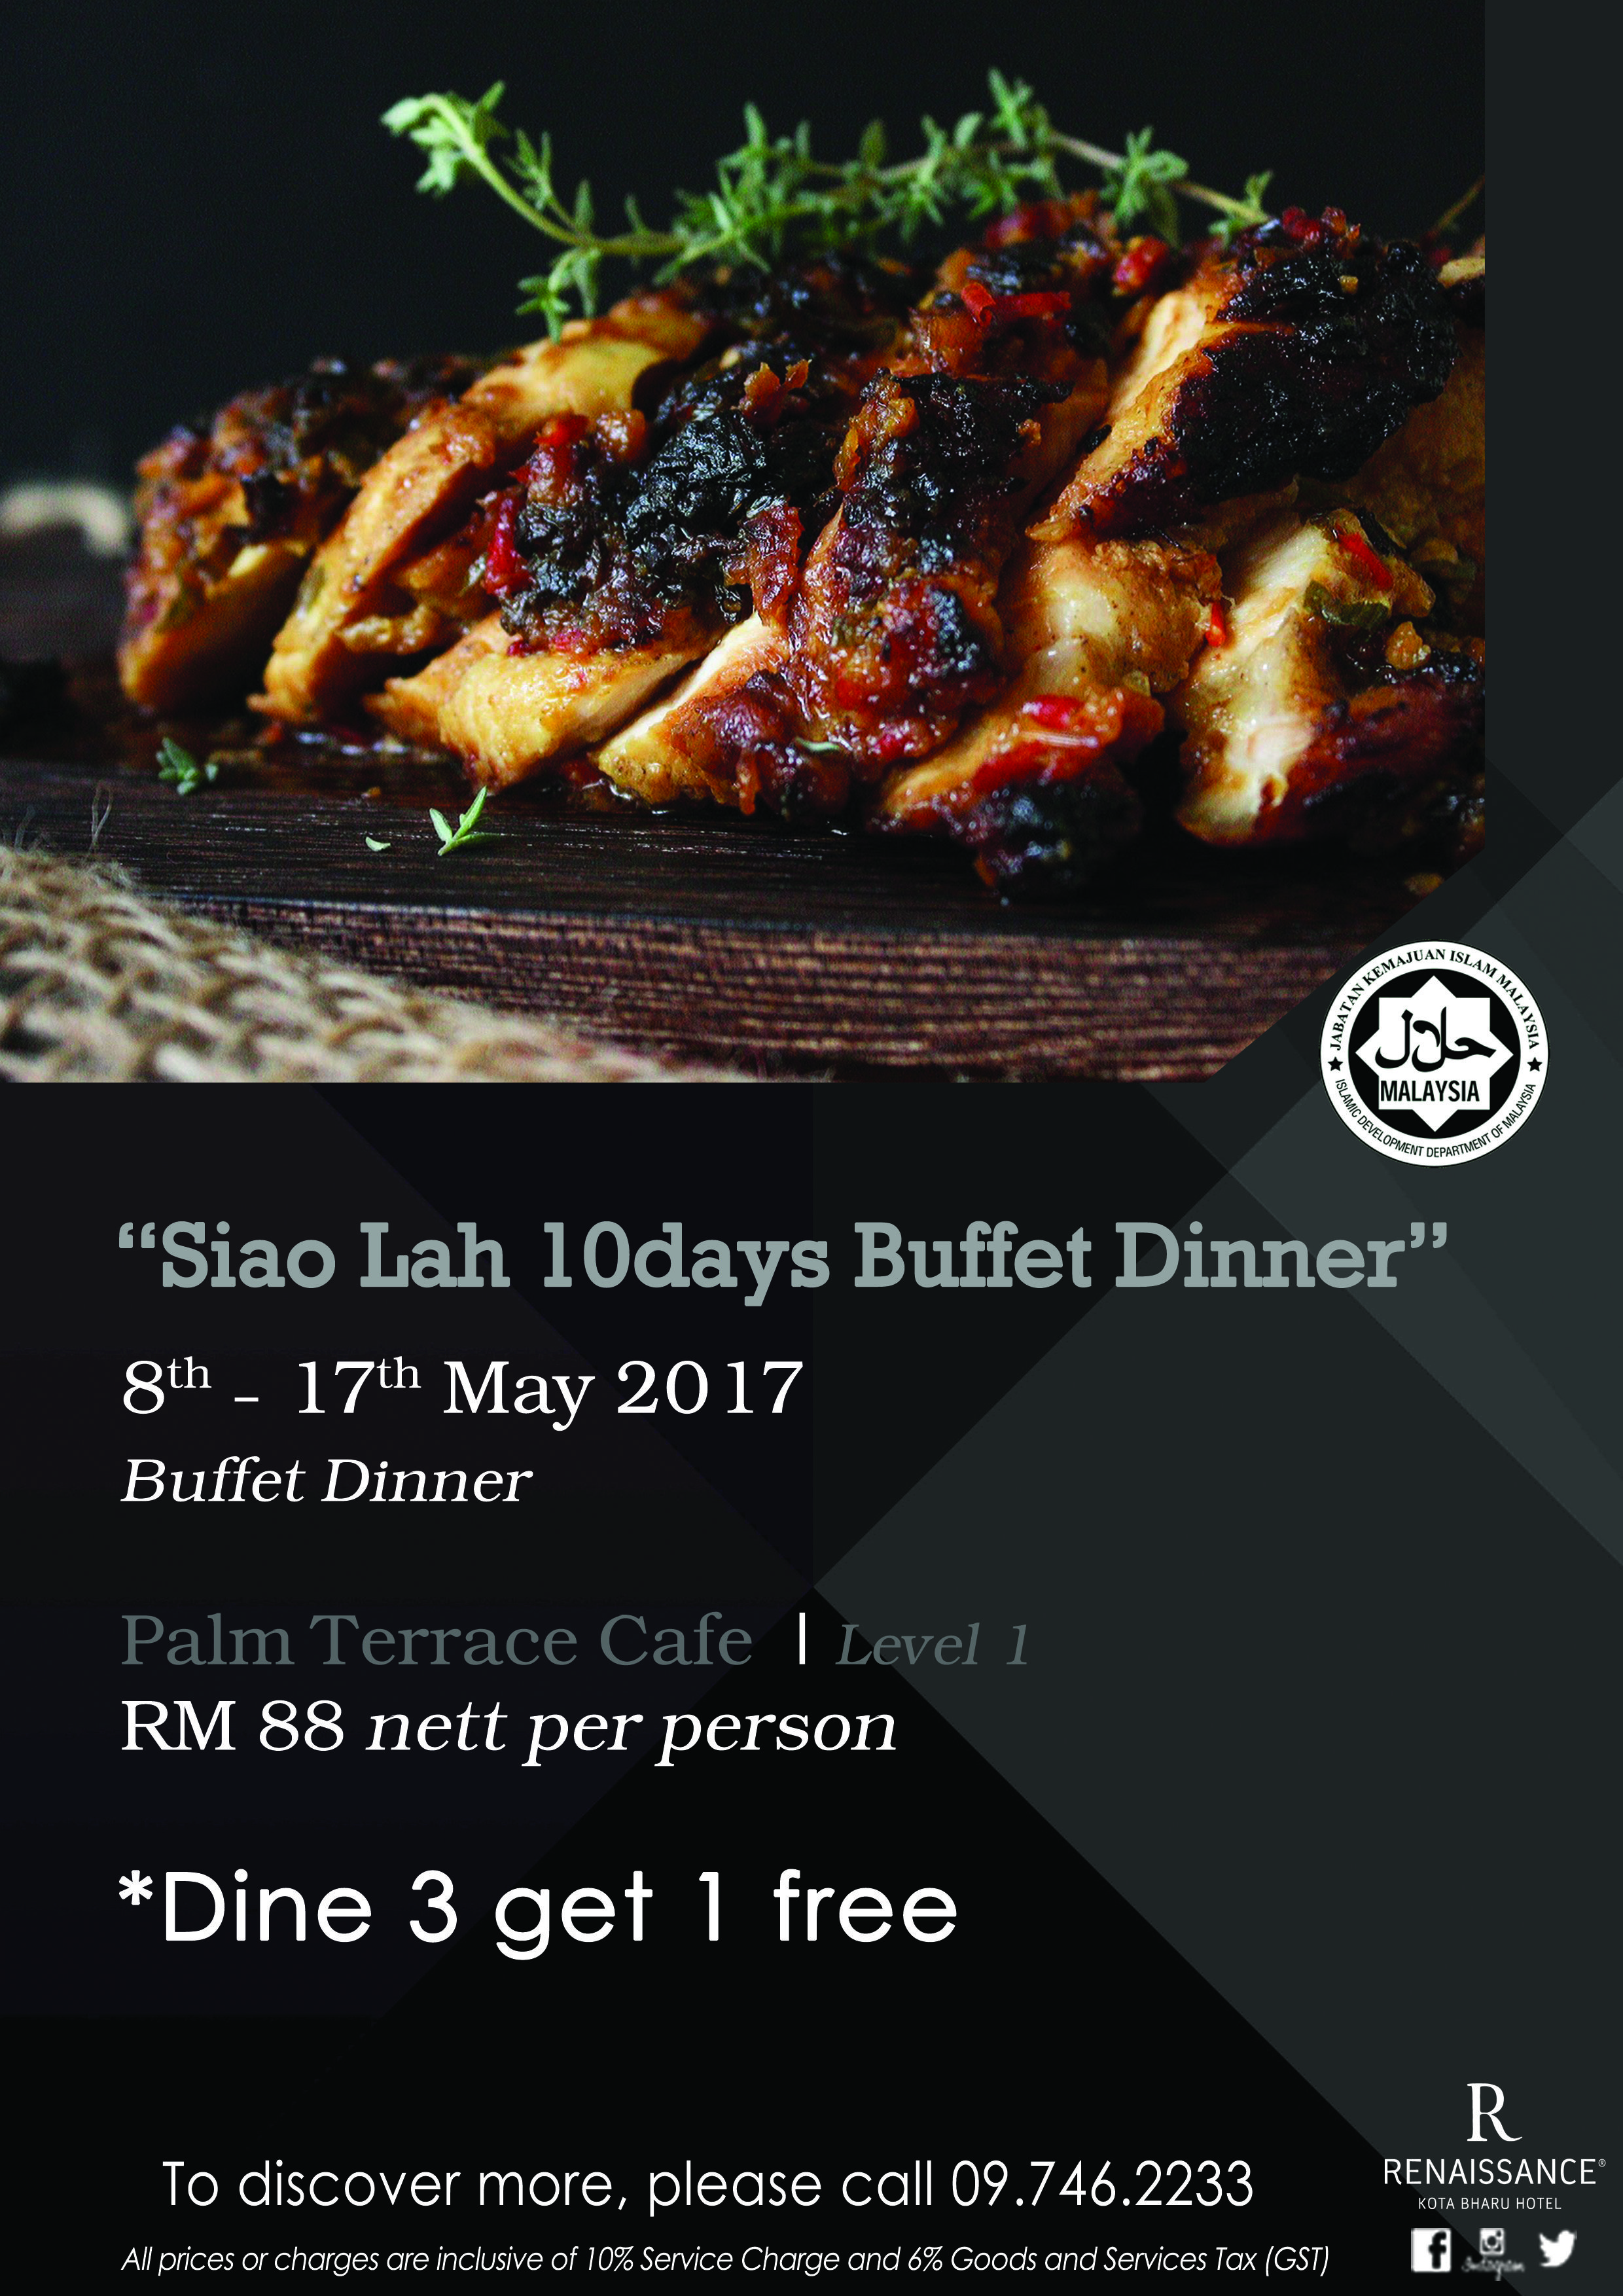 siao lah 10days buffet dinner on 8th until 17th may 2017 @ palm